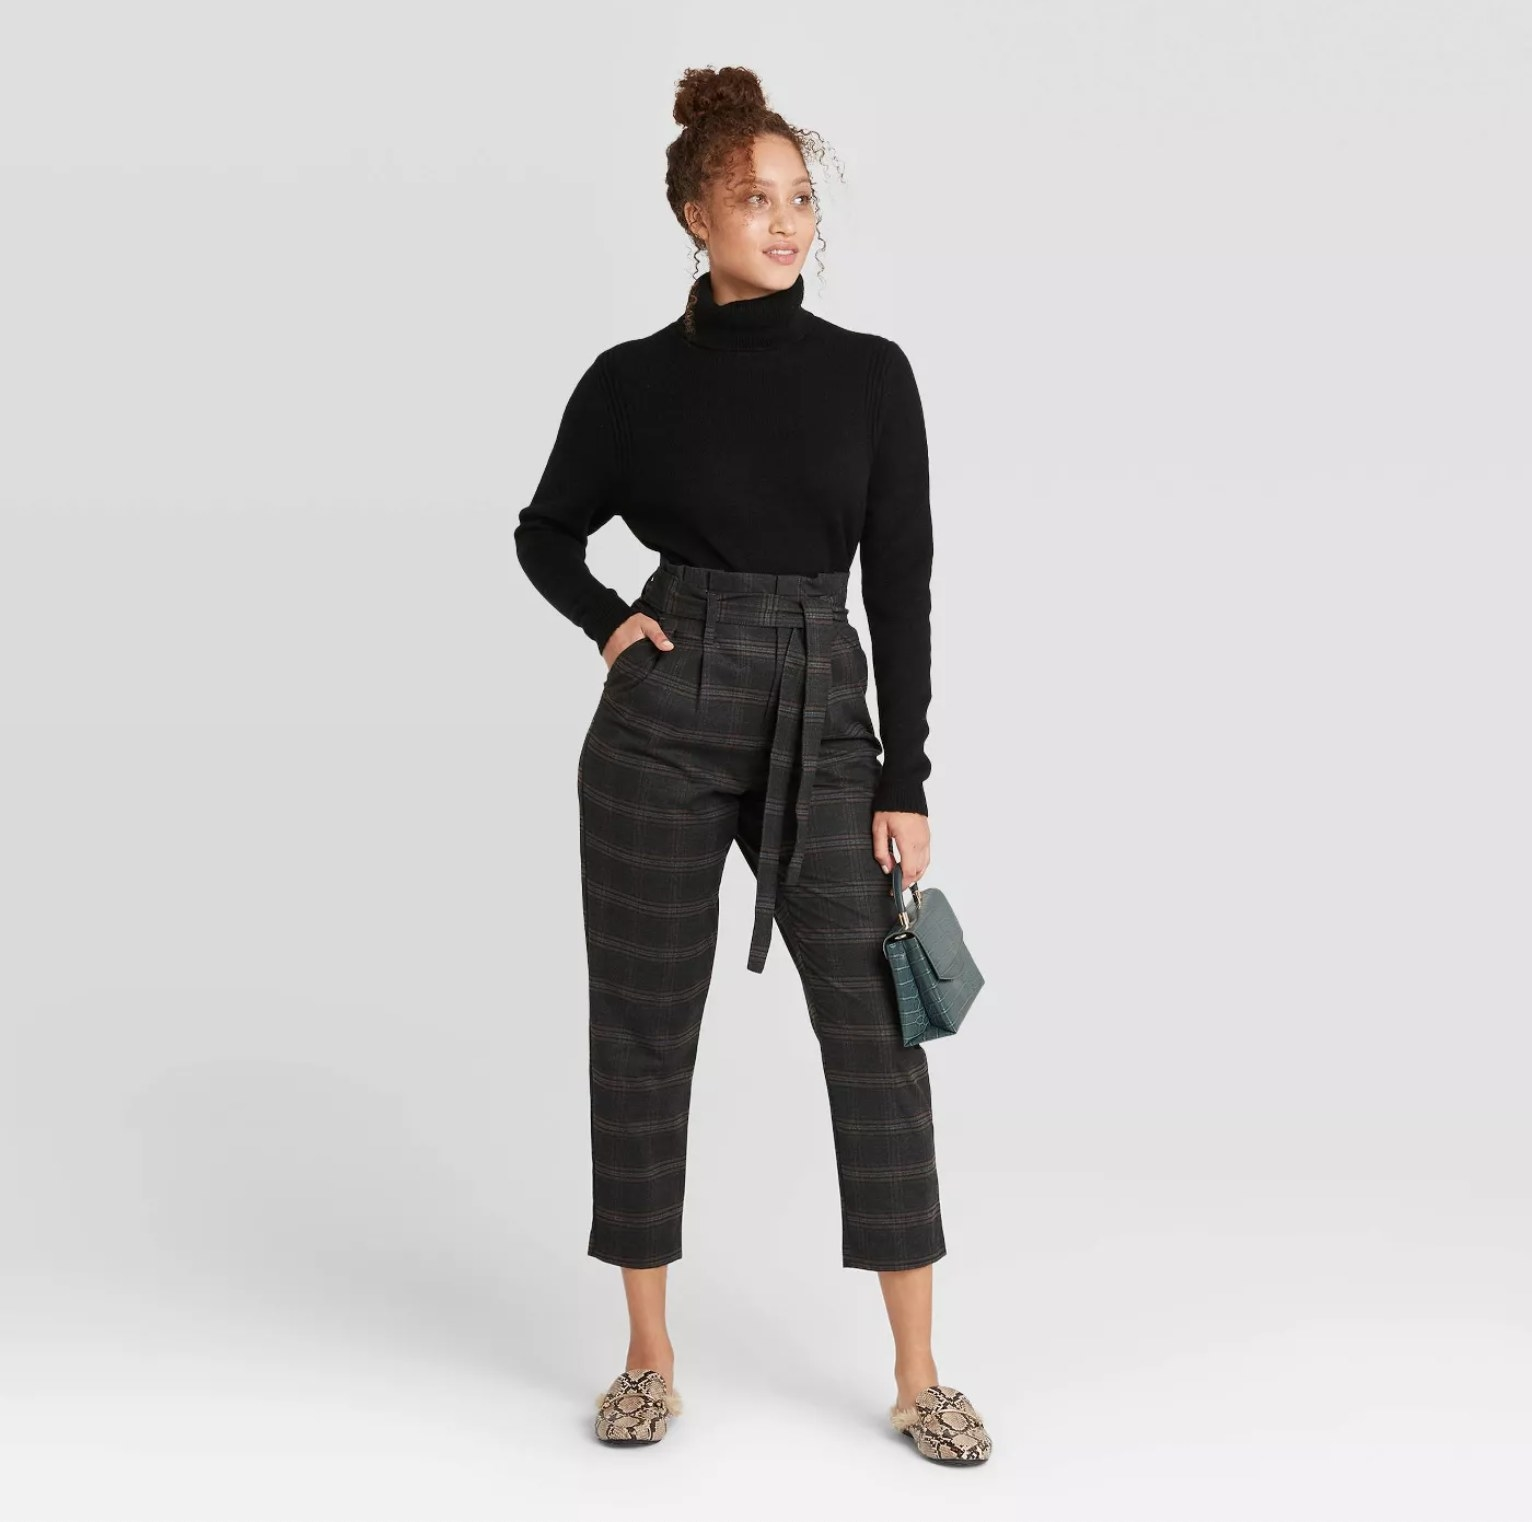 Model wearing the pants in plaid charcoal grey